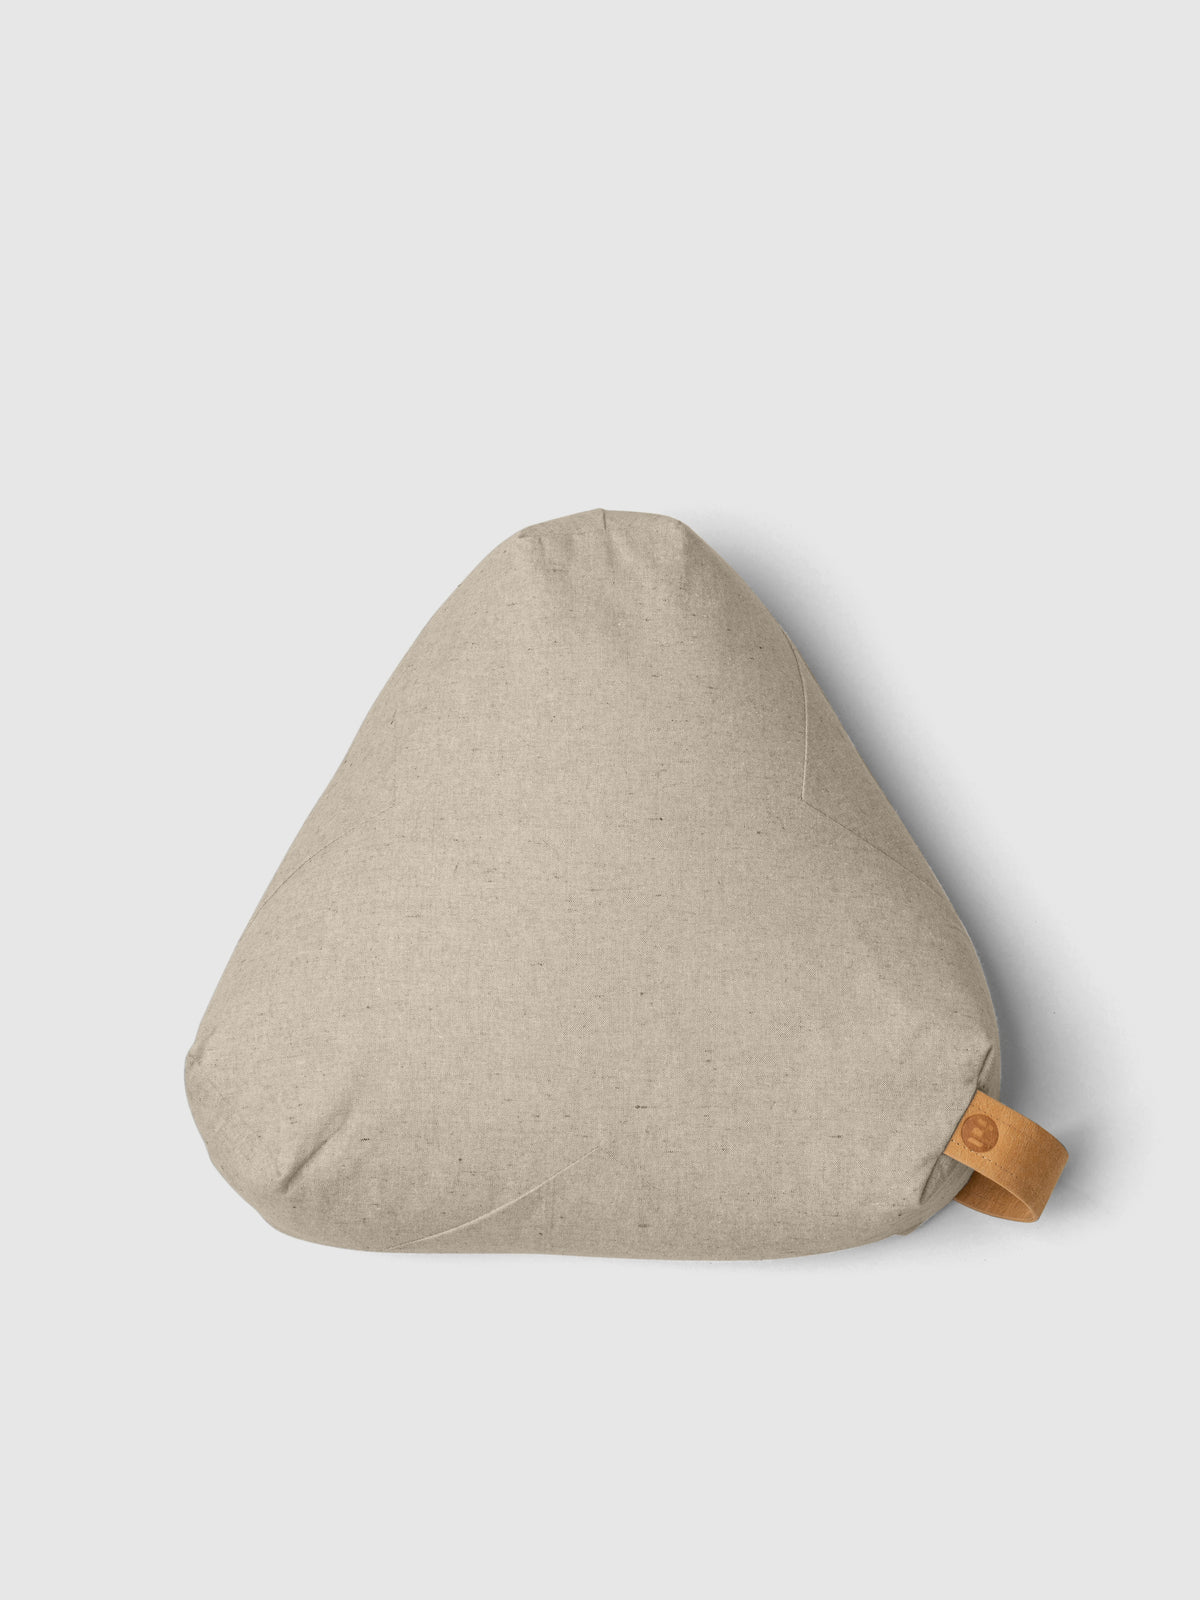 Organic Cotton Meditation Support Cushion – Sandstone